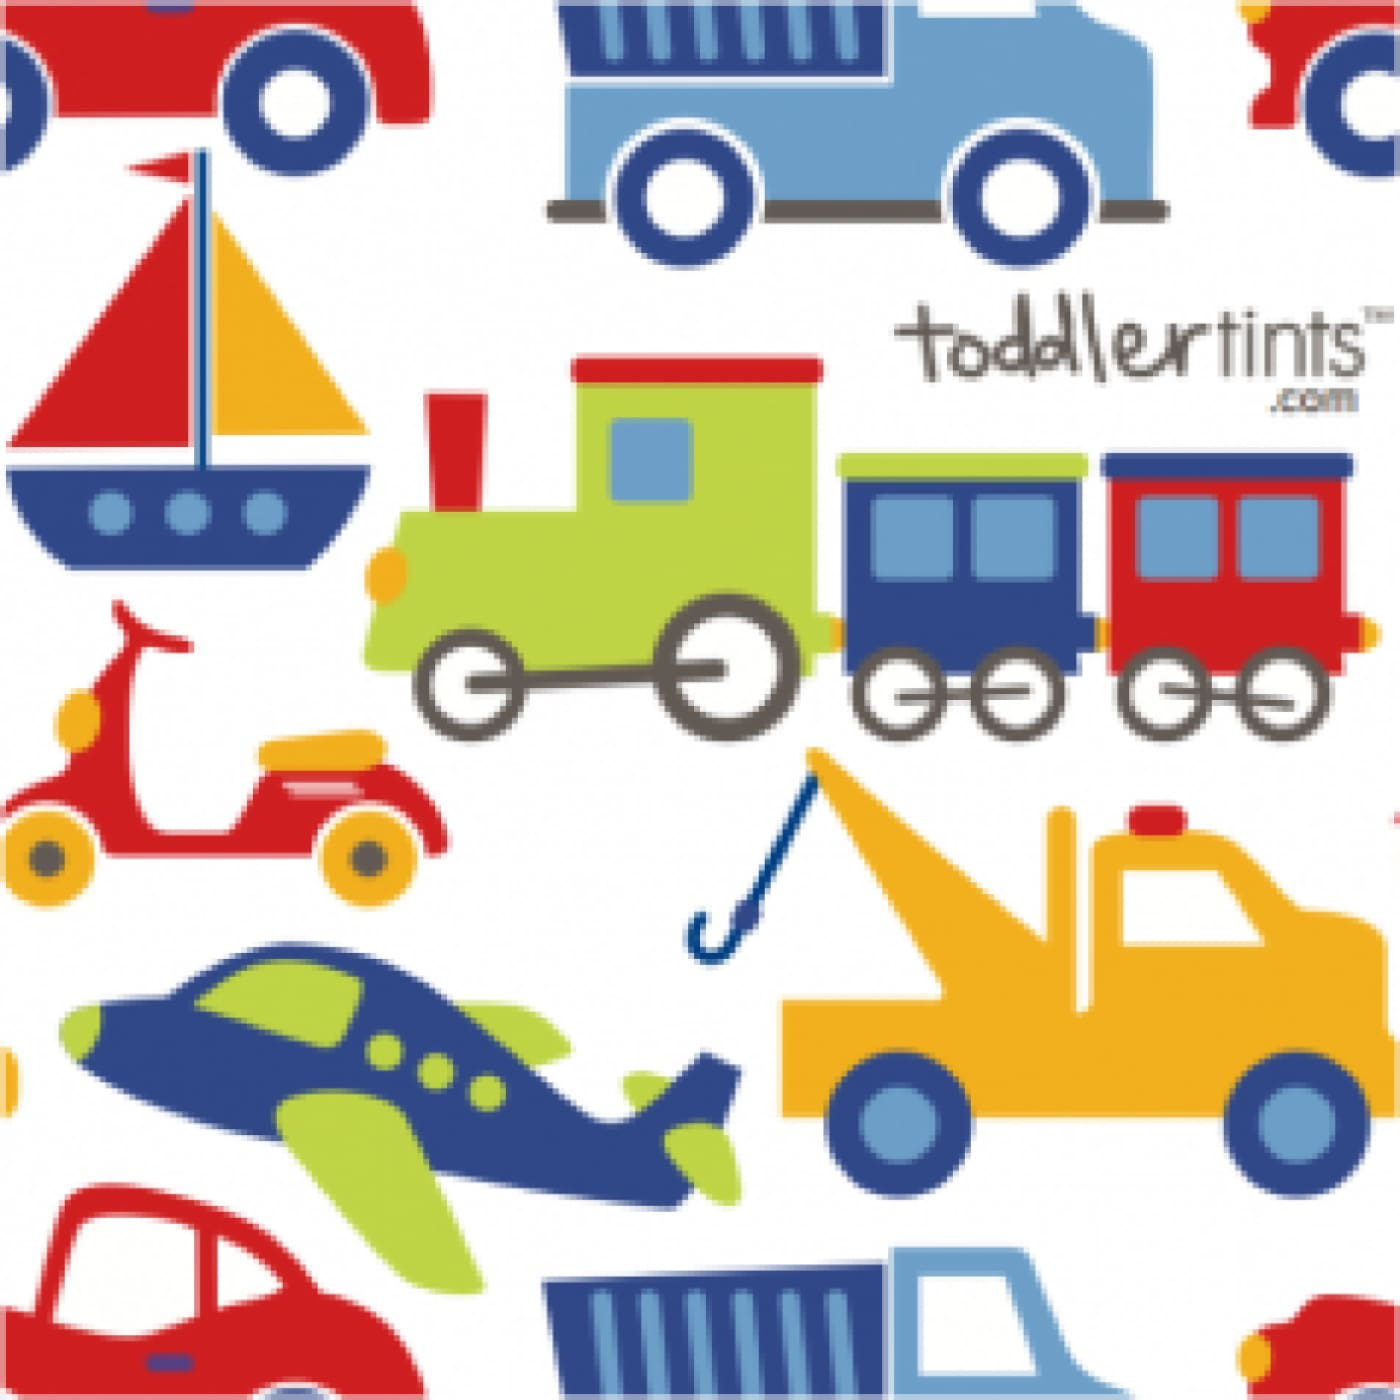 Toddler Tints - Brmm Beep Whoosh - CAR SEATS - SUNSHADES/WEATHERSHIELDS